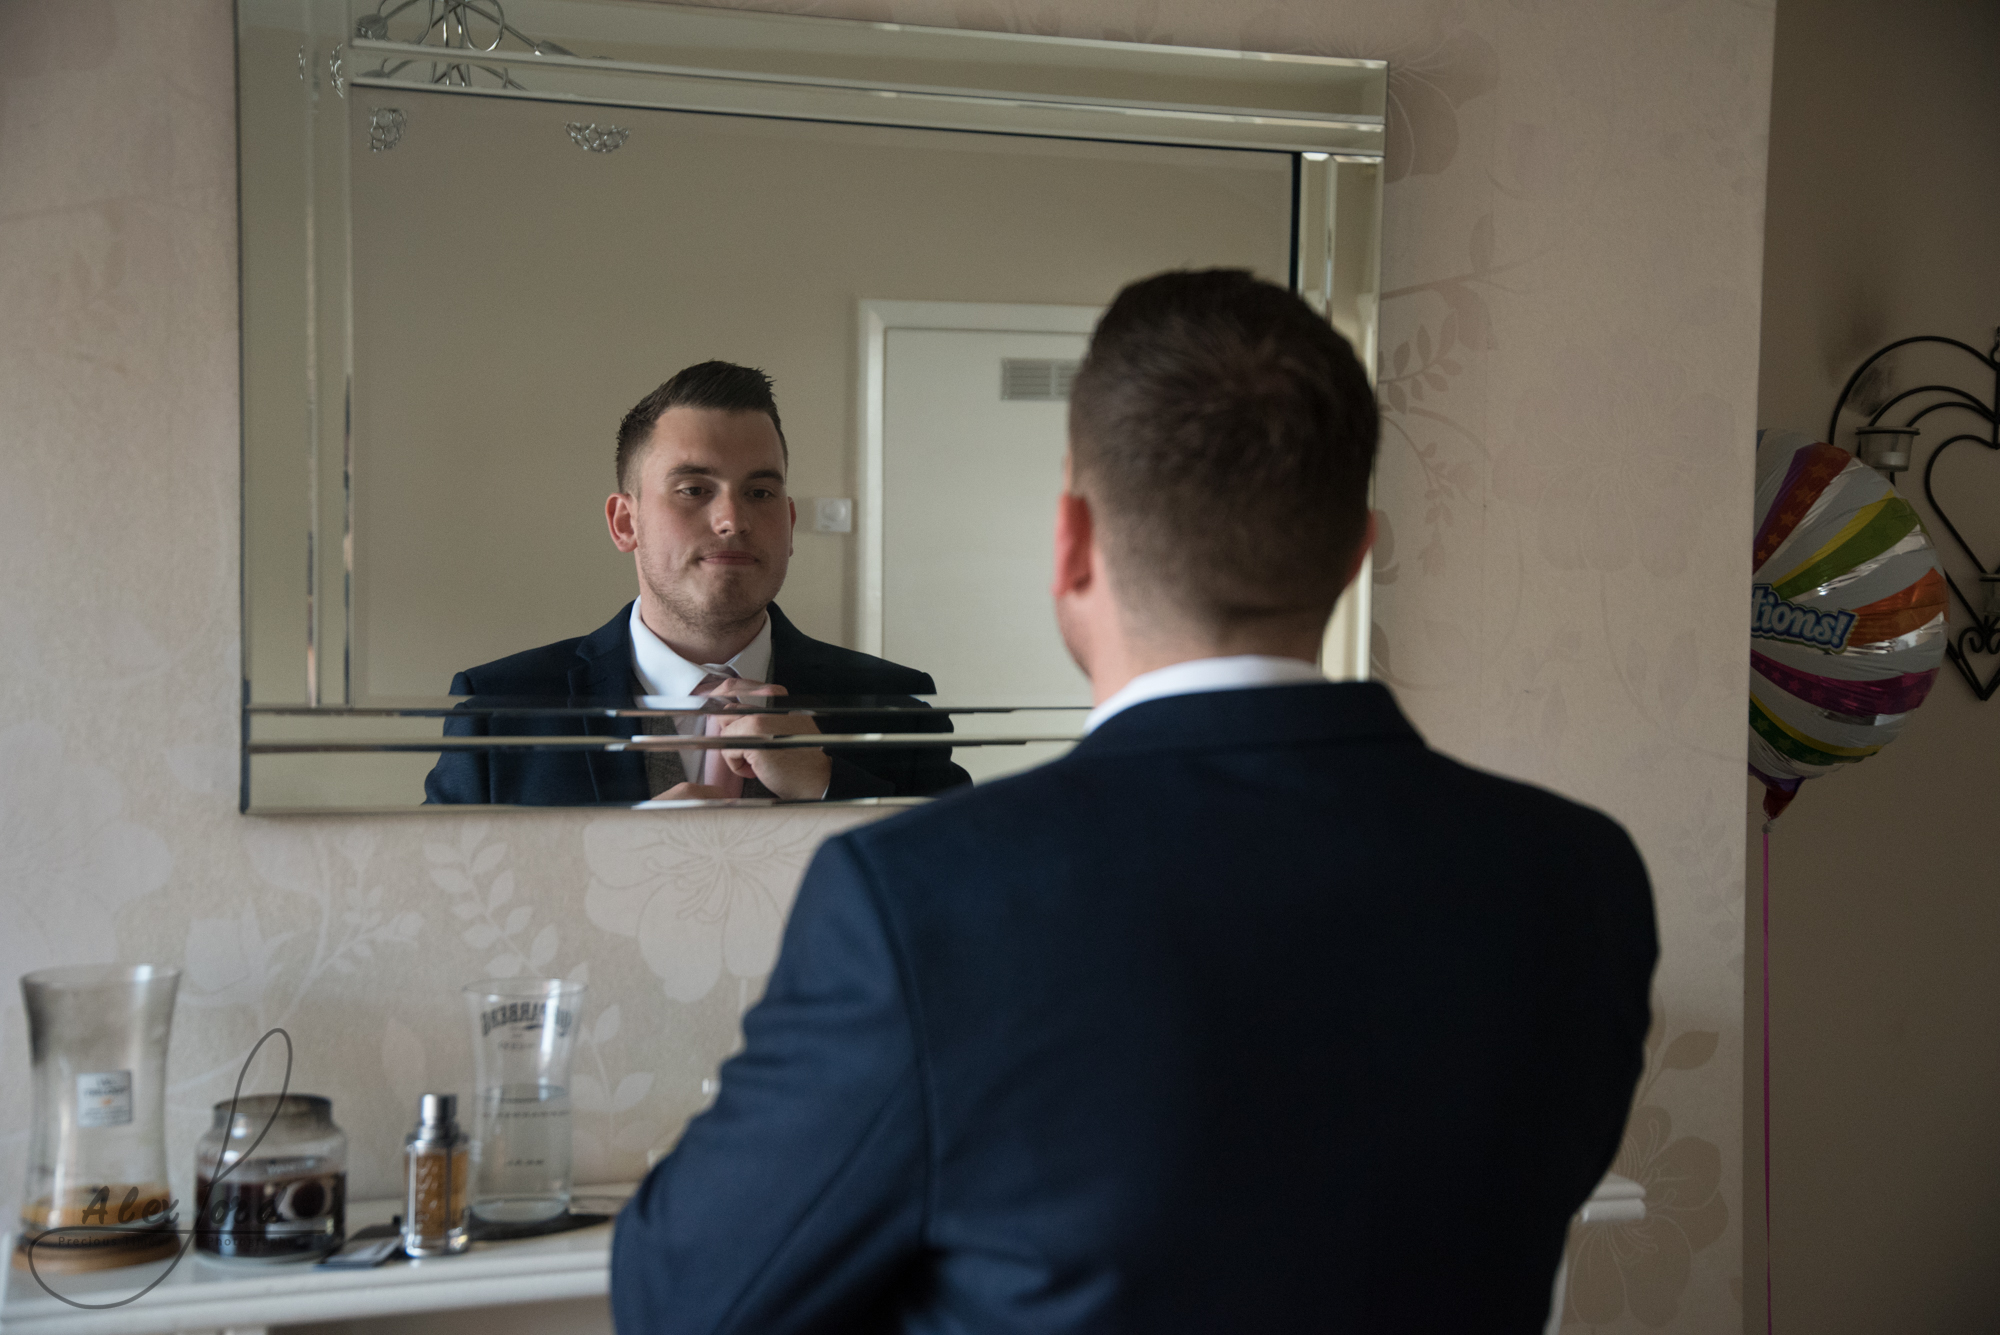 The groom dressed in a blue suit check his tie in the mirror before he leaves for his wedding ceremony